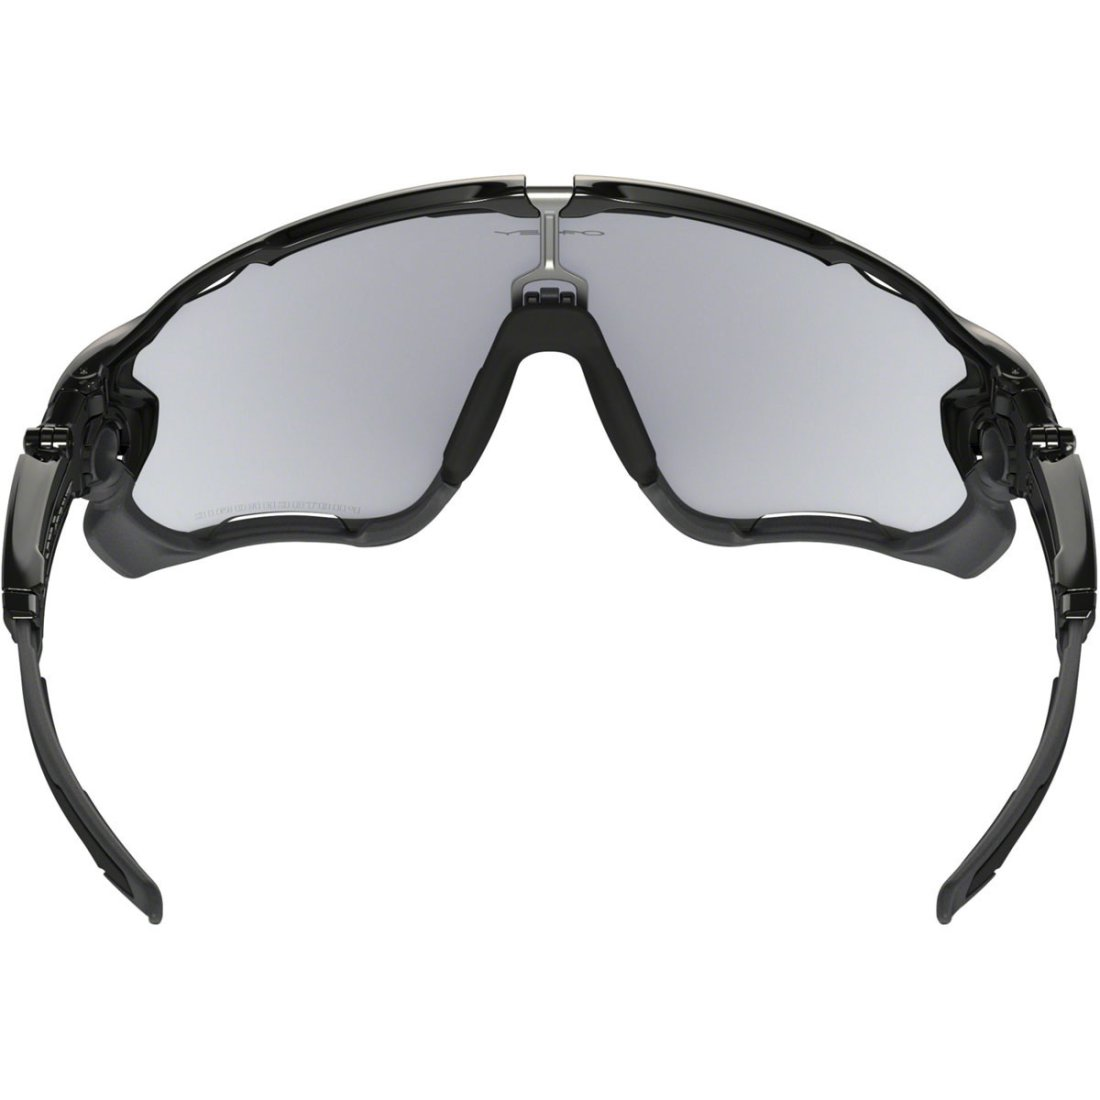 5e90831d79 OAKLEY Jawbreaker Photochromic Polished Black   Clear Black Iridium  Photocrhomic Activated Mask   Goggle